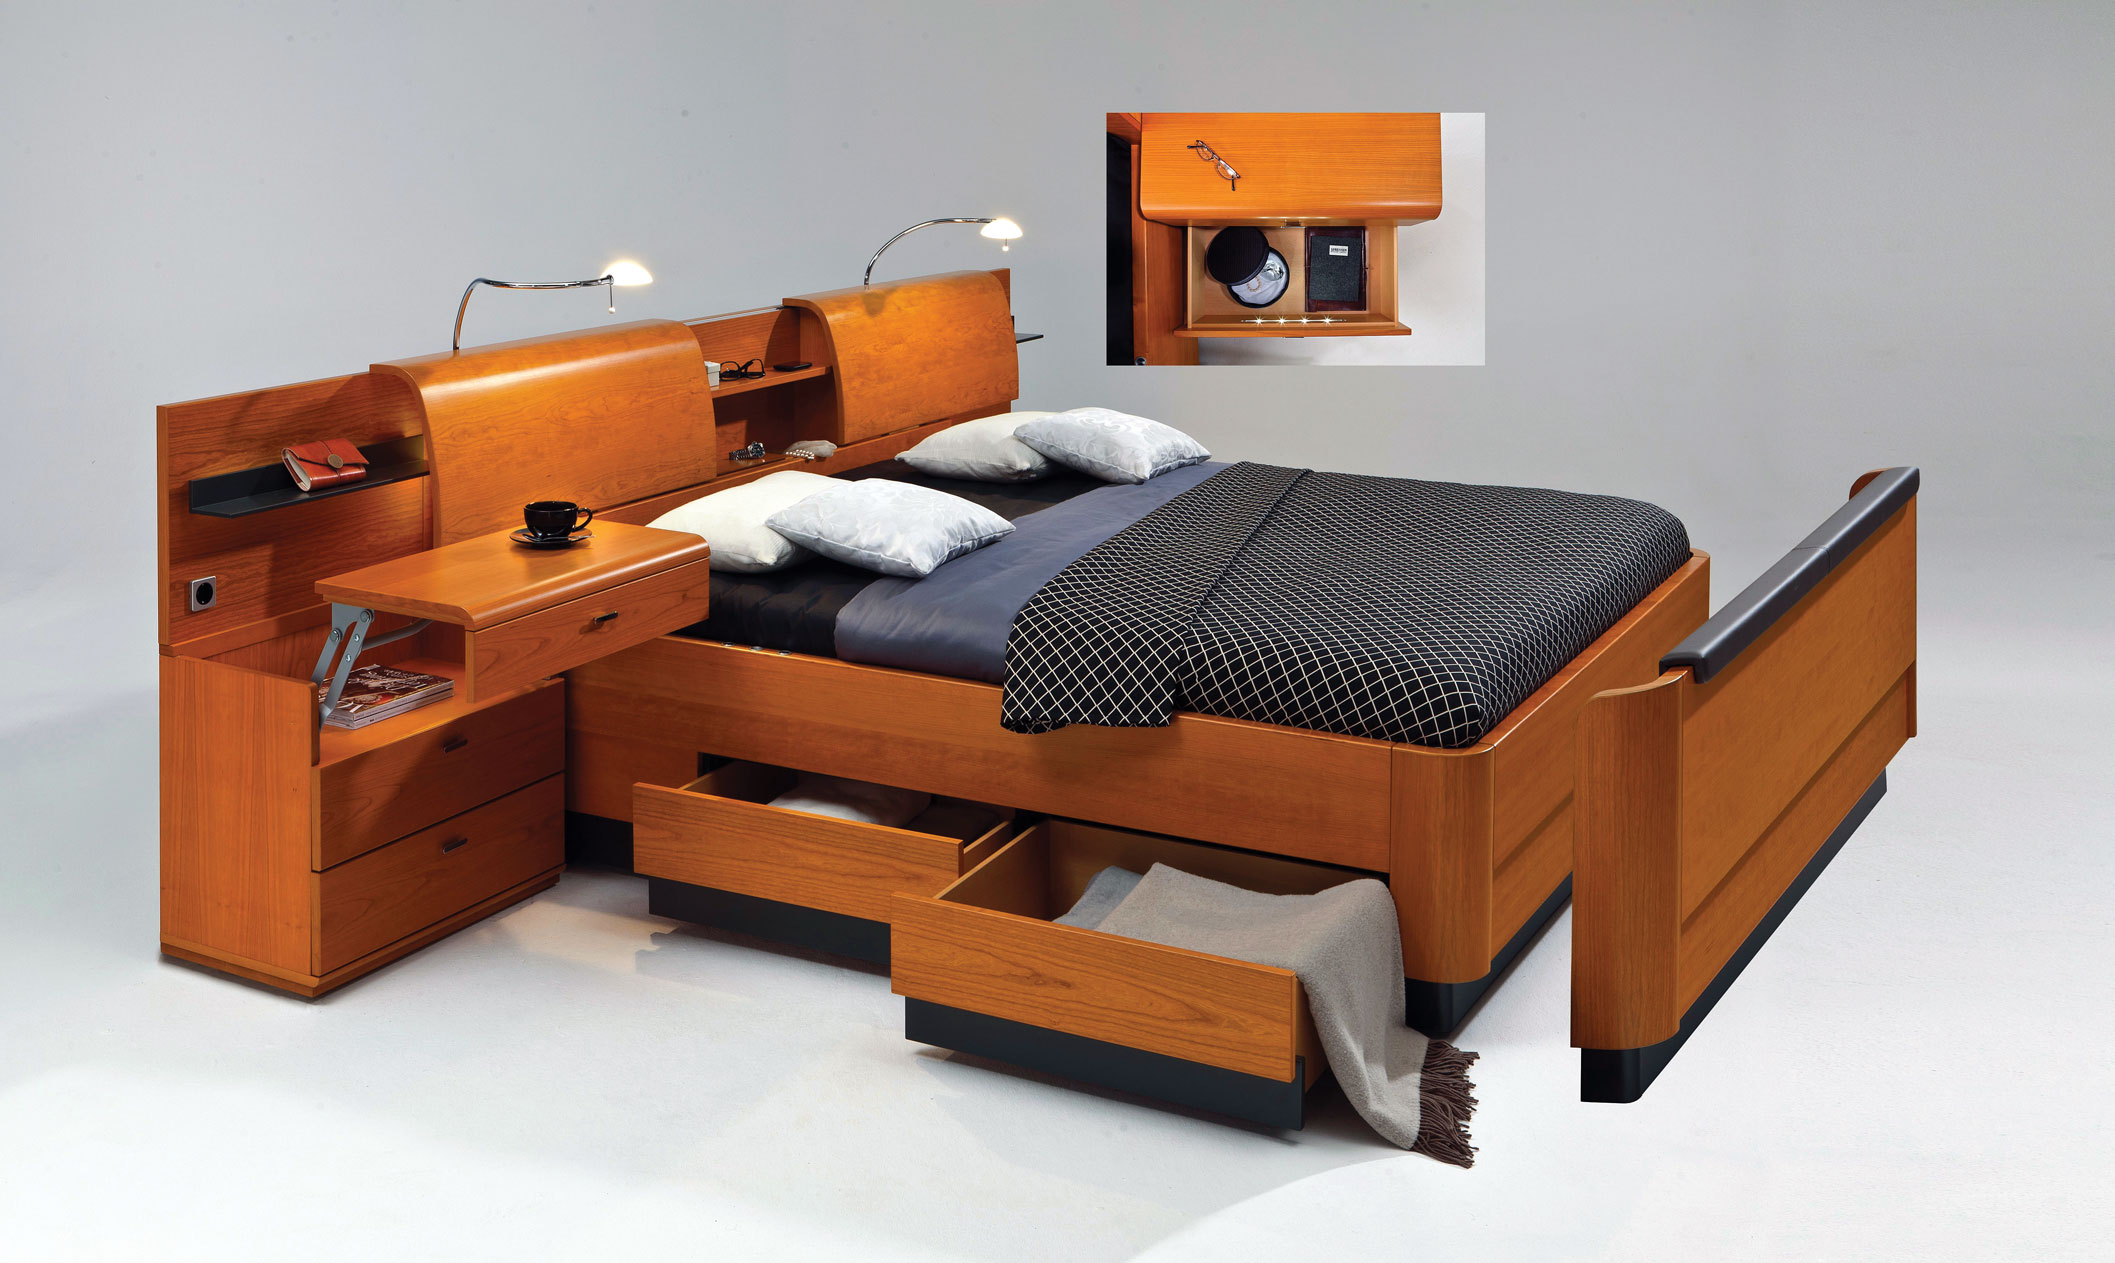 Multifunctional furniture for small spaces homesfeed for Small furniture